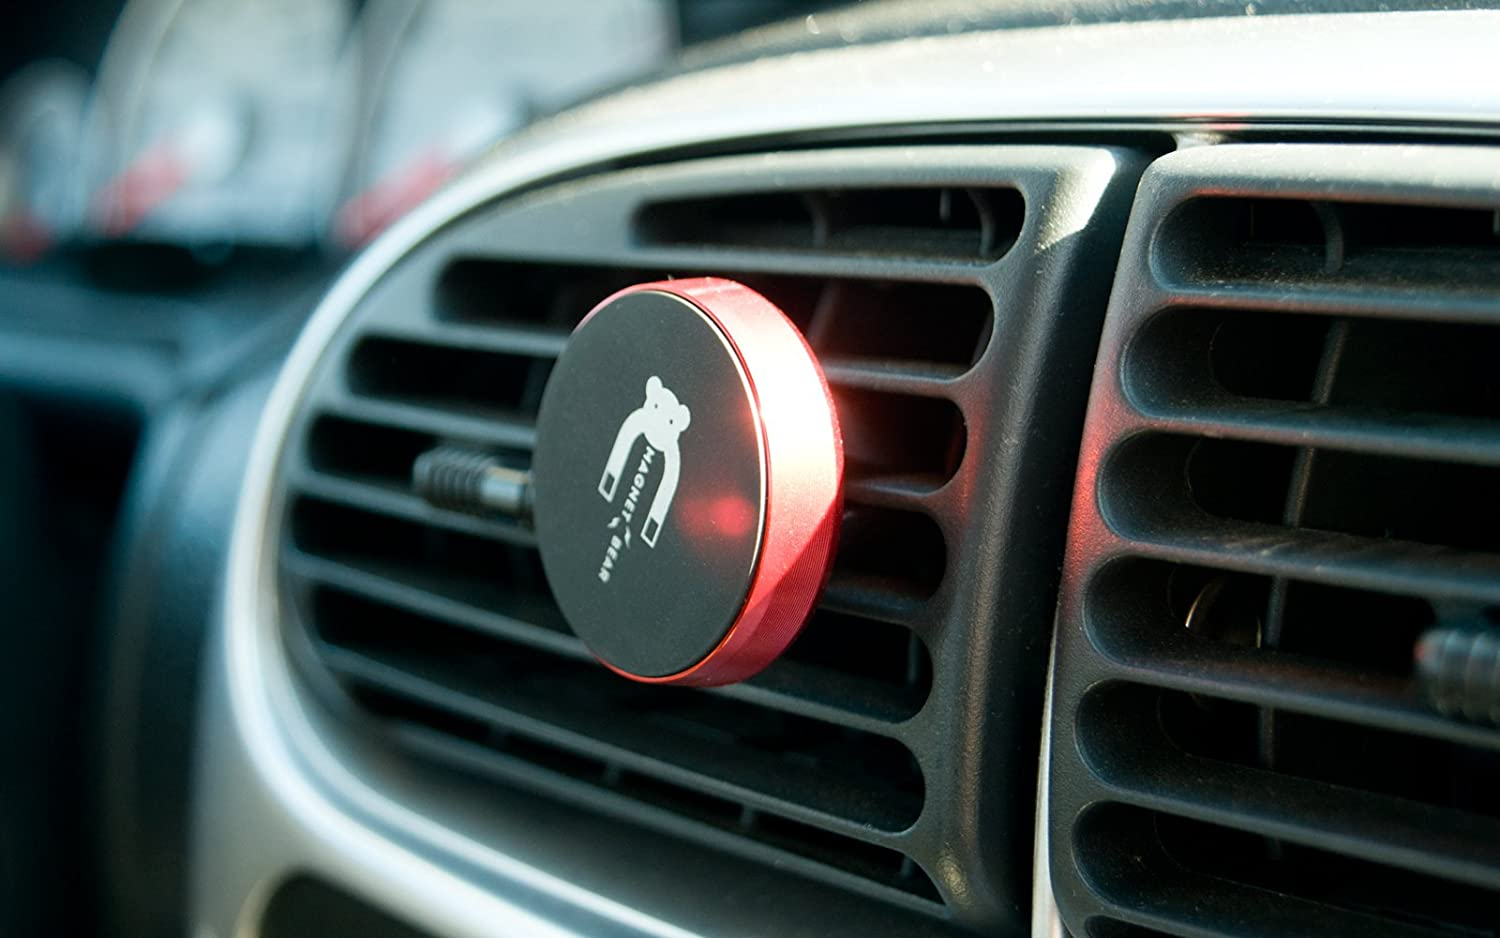 Red Vent Holder, 2 Black Ring Universal Magnetic Cell Phone Car Air Vent Mount Holder /& Rotating Magnet Ring Stand for iPhone X 8//8 Plus 7//7 Plus 6//6 Plus SE Samsung S6 S8 Note 8 ZTE GPS MP3 PDA International Wireless RHCB